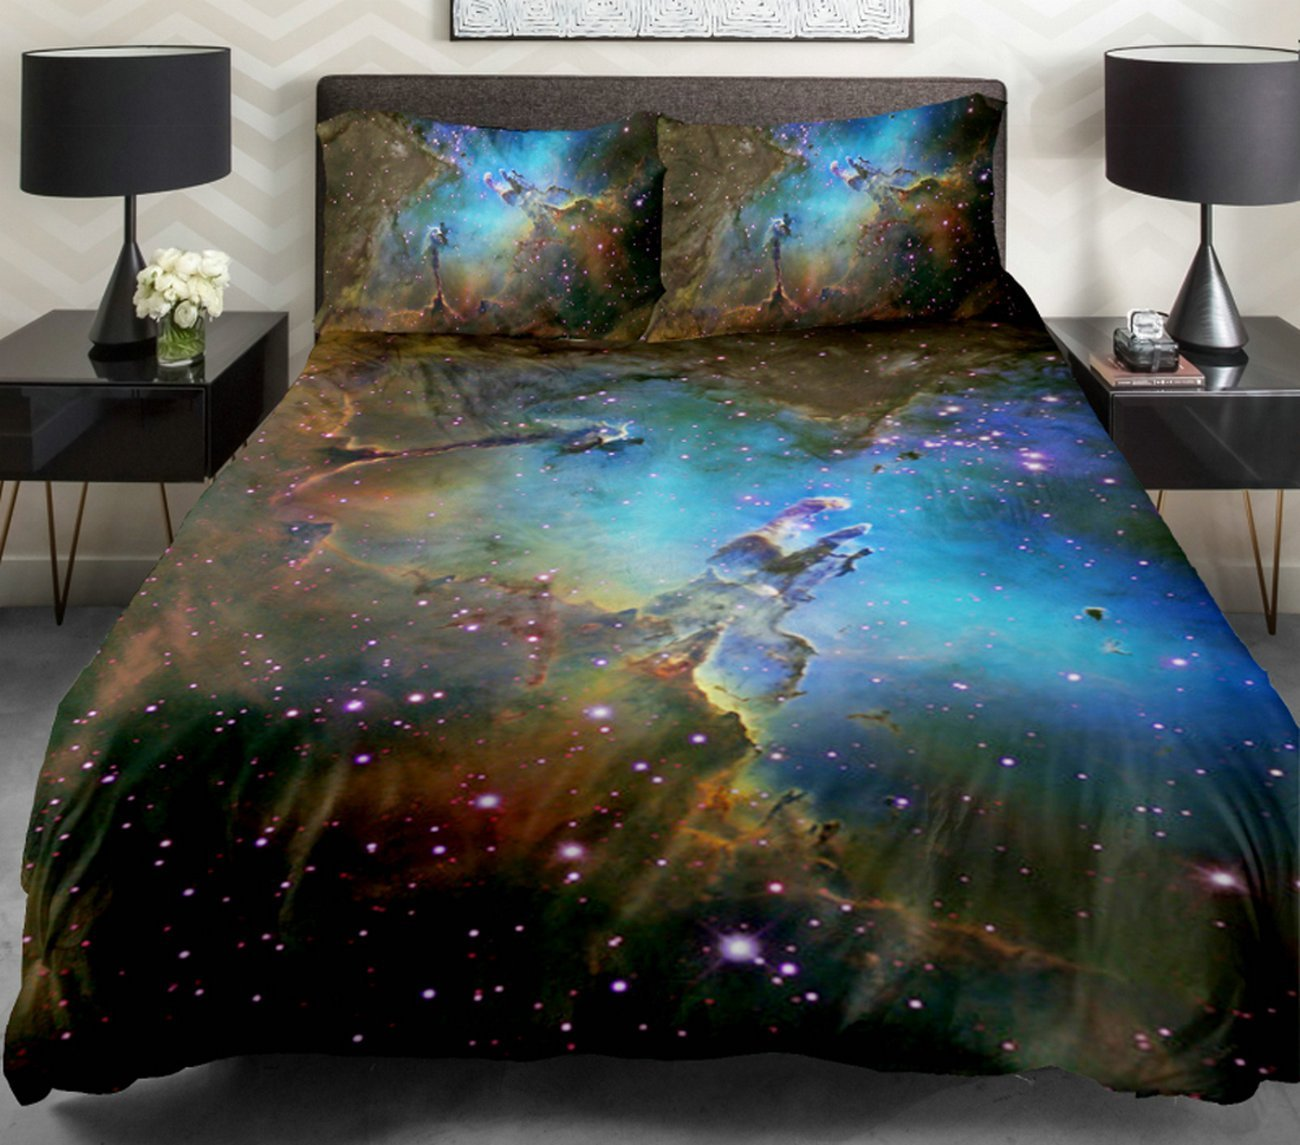 Galaxy Bedding Set